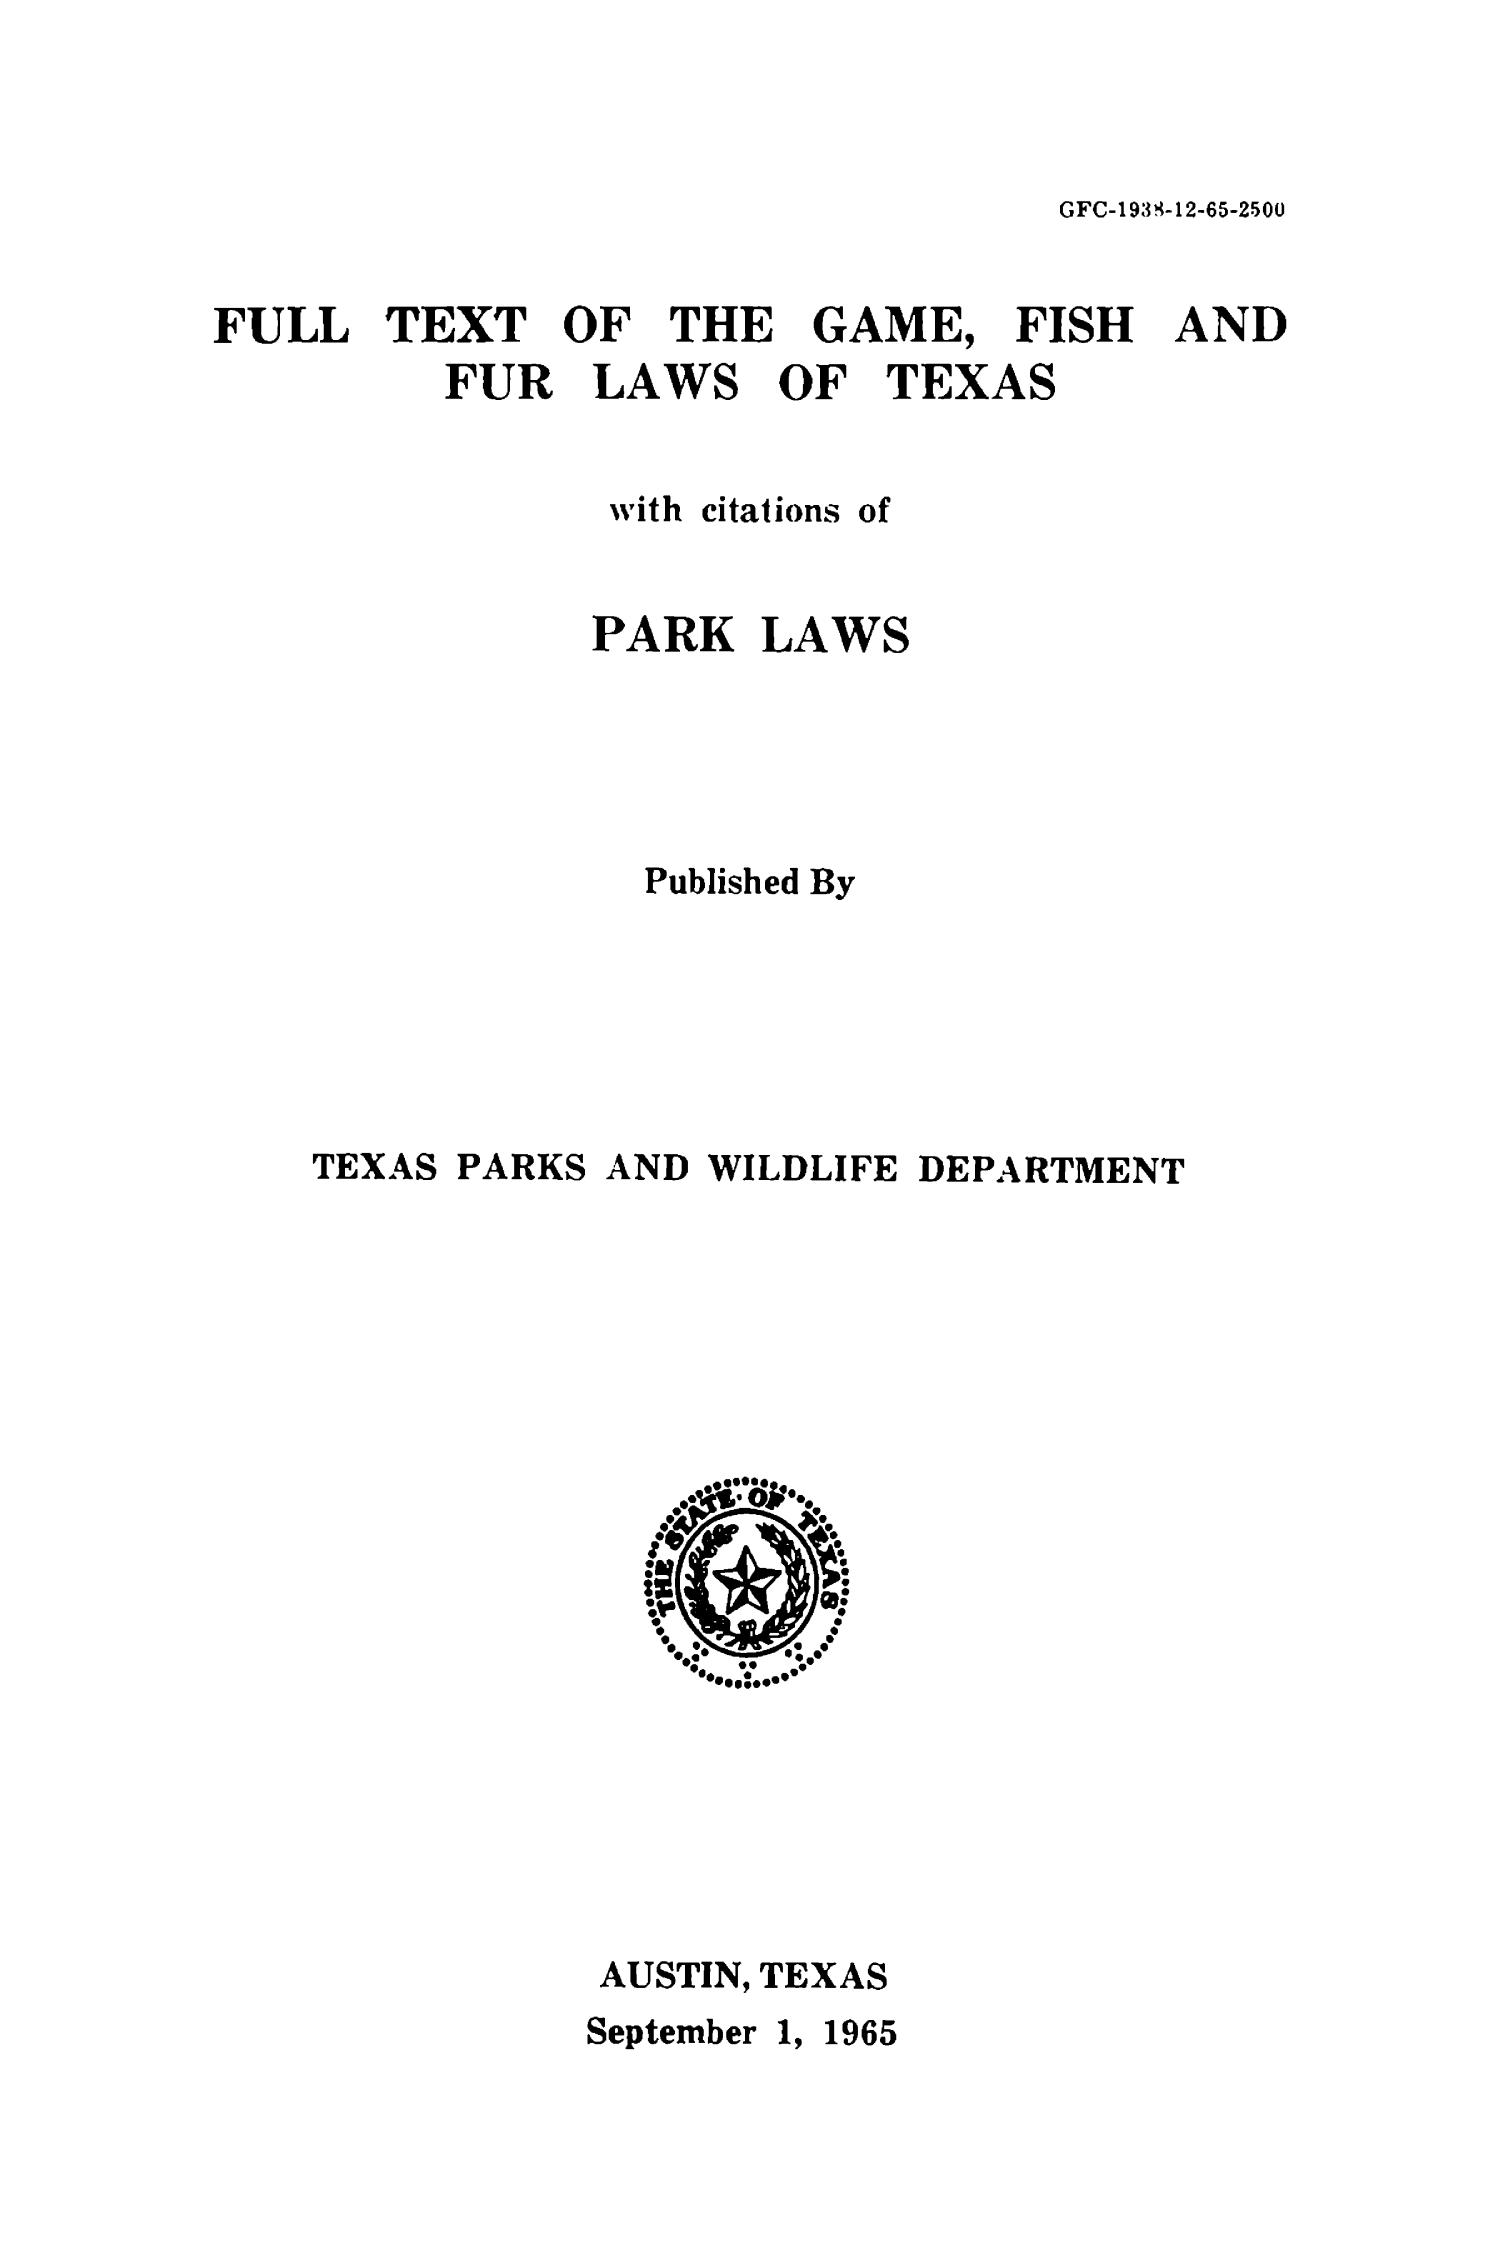 Full Text of the Game, Fish and Fur Laws of Texas with citations of Park Laws, 1965                                                                                                      Title Page